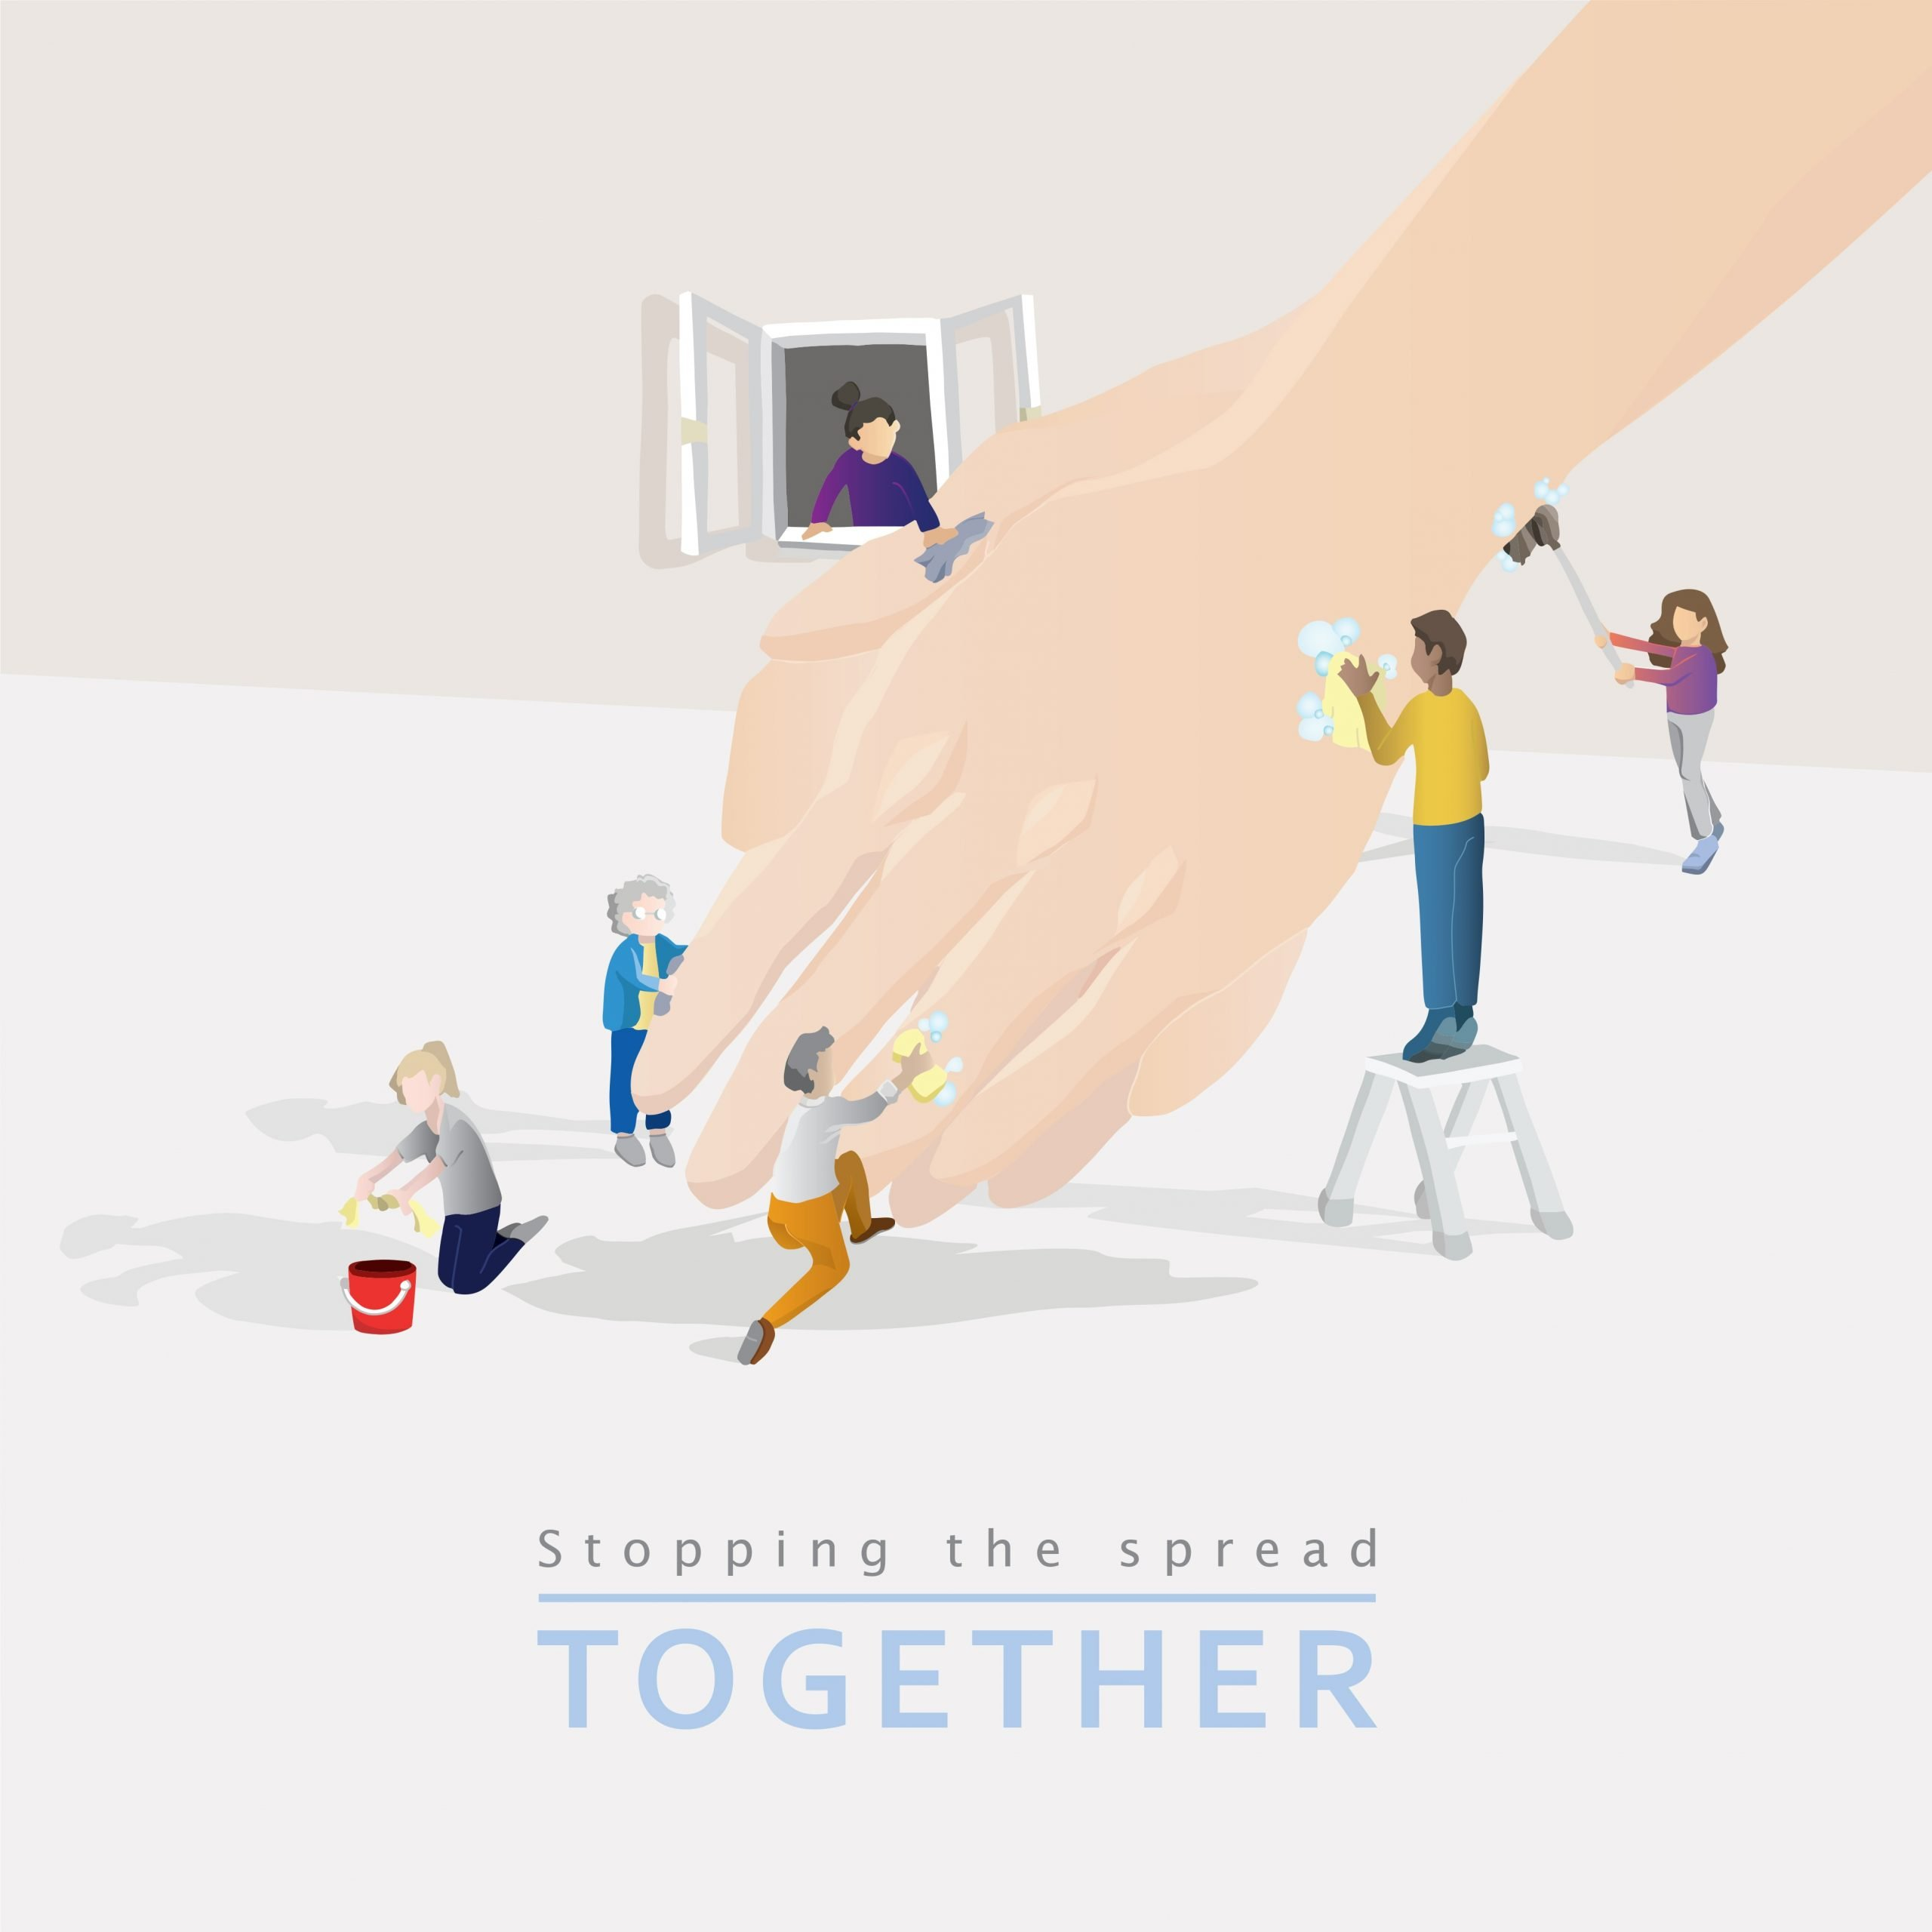 Stopping the spread, together. Image created by Deana Tsang